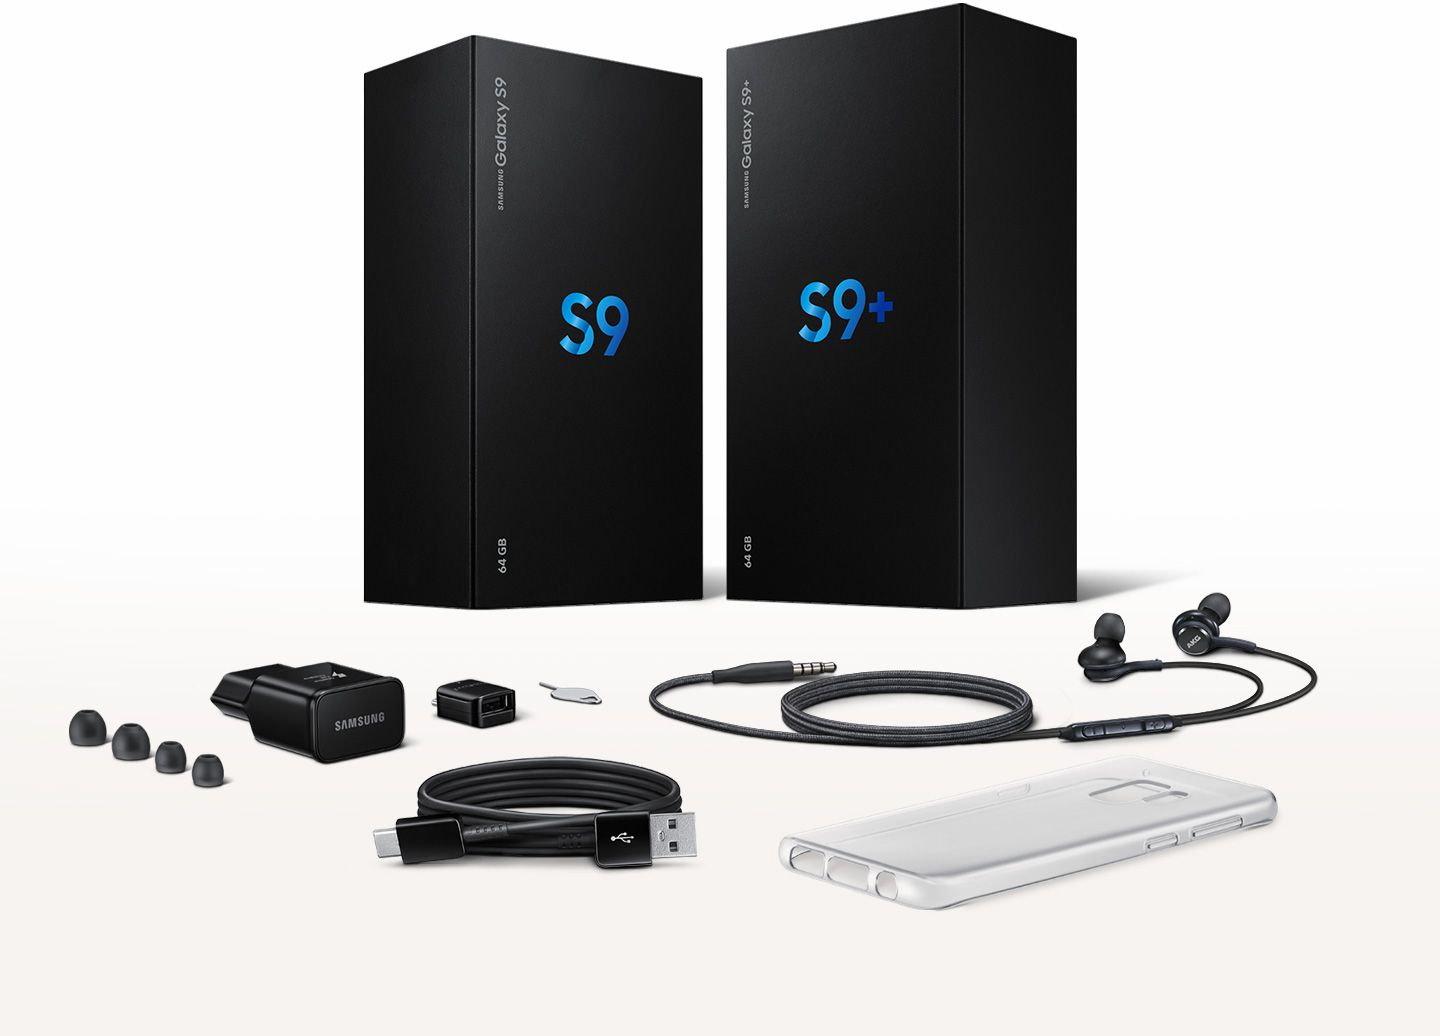 Image of Galaxy S9 and Galaxy S9+ boxes with included accessories